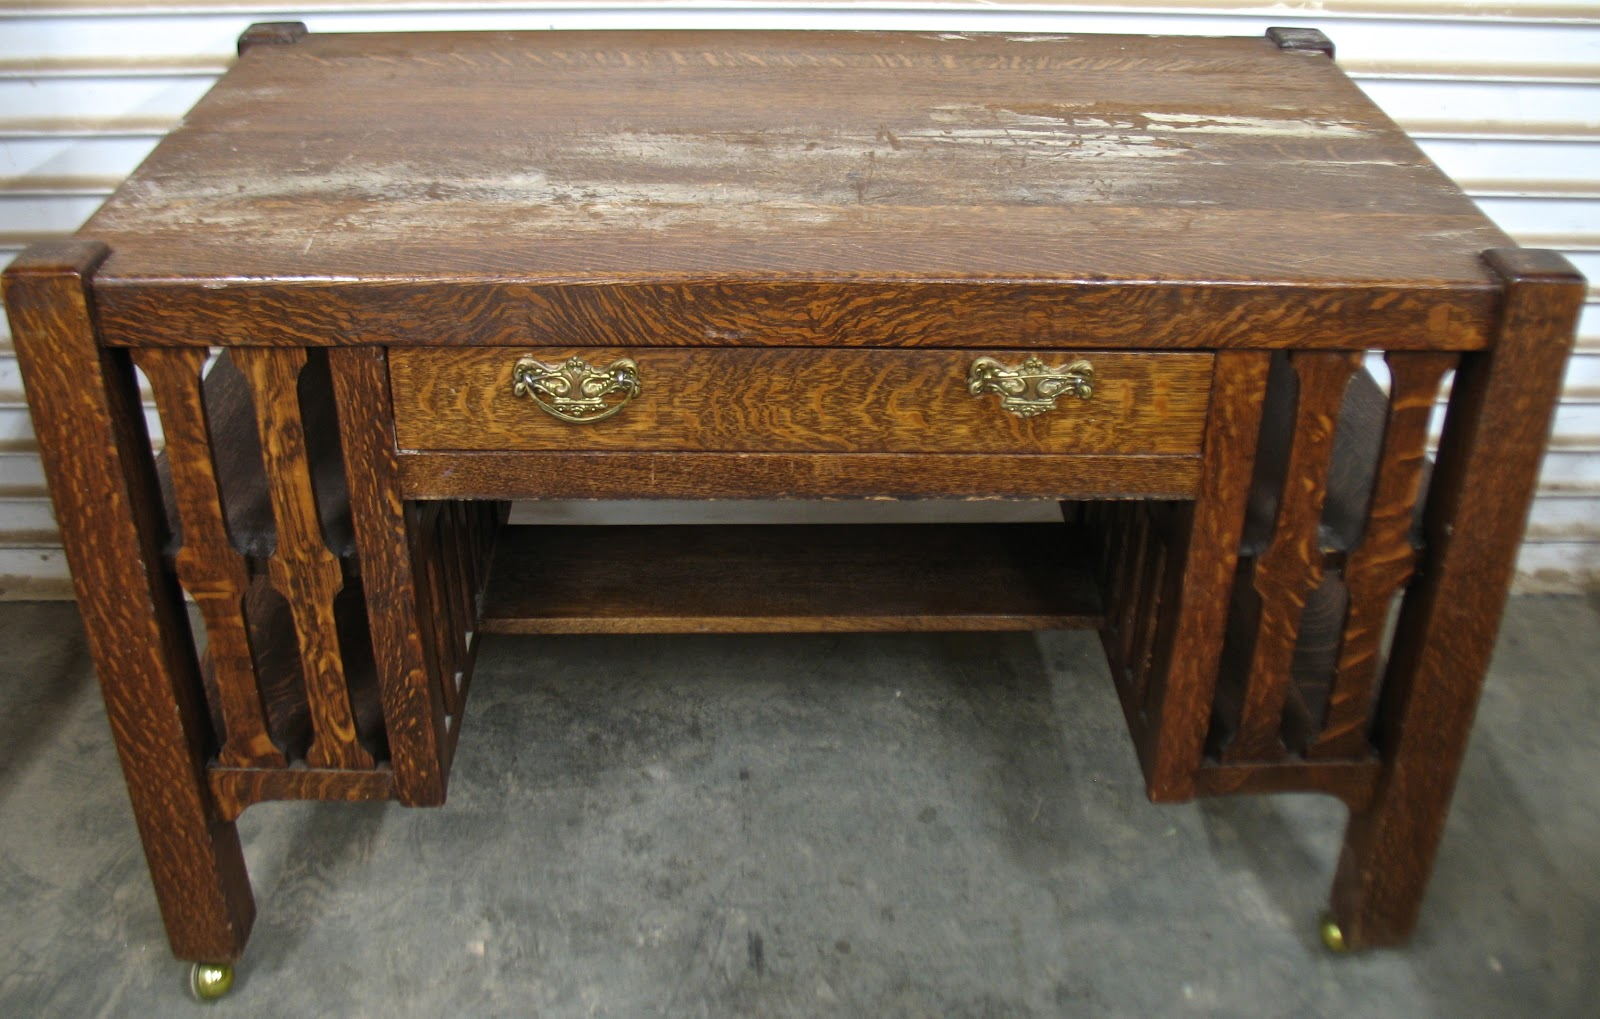 The Craftsman Oak Mission Style Desk. Dimensions Of A Ping Pong Table. Childrens Wooden Table And Chair Set. U Table. Under Couch Tables. Office Desks Denver. Plain Black Desk. Outdoor Coffee Table Ideas. Plastic Drawer